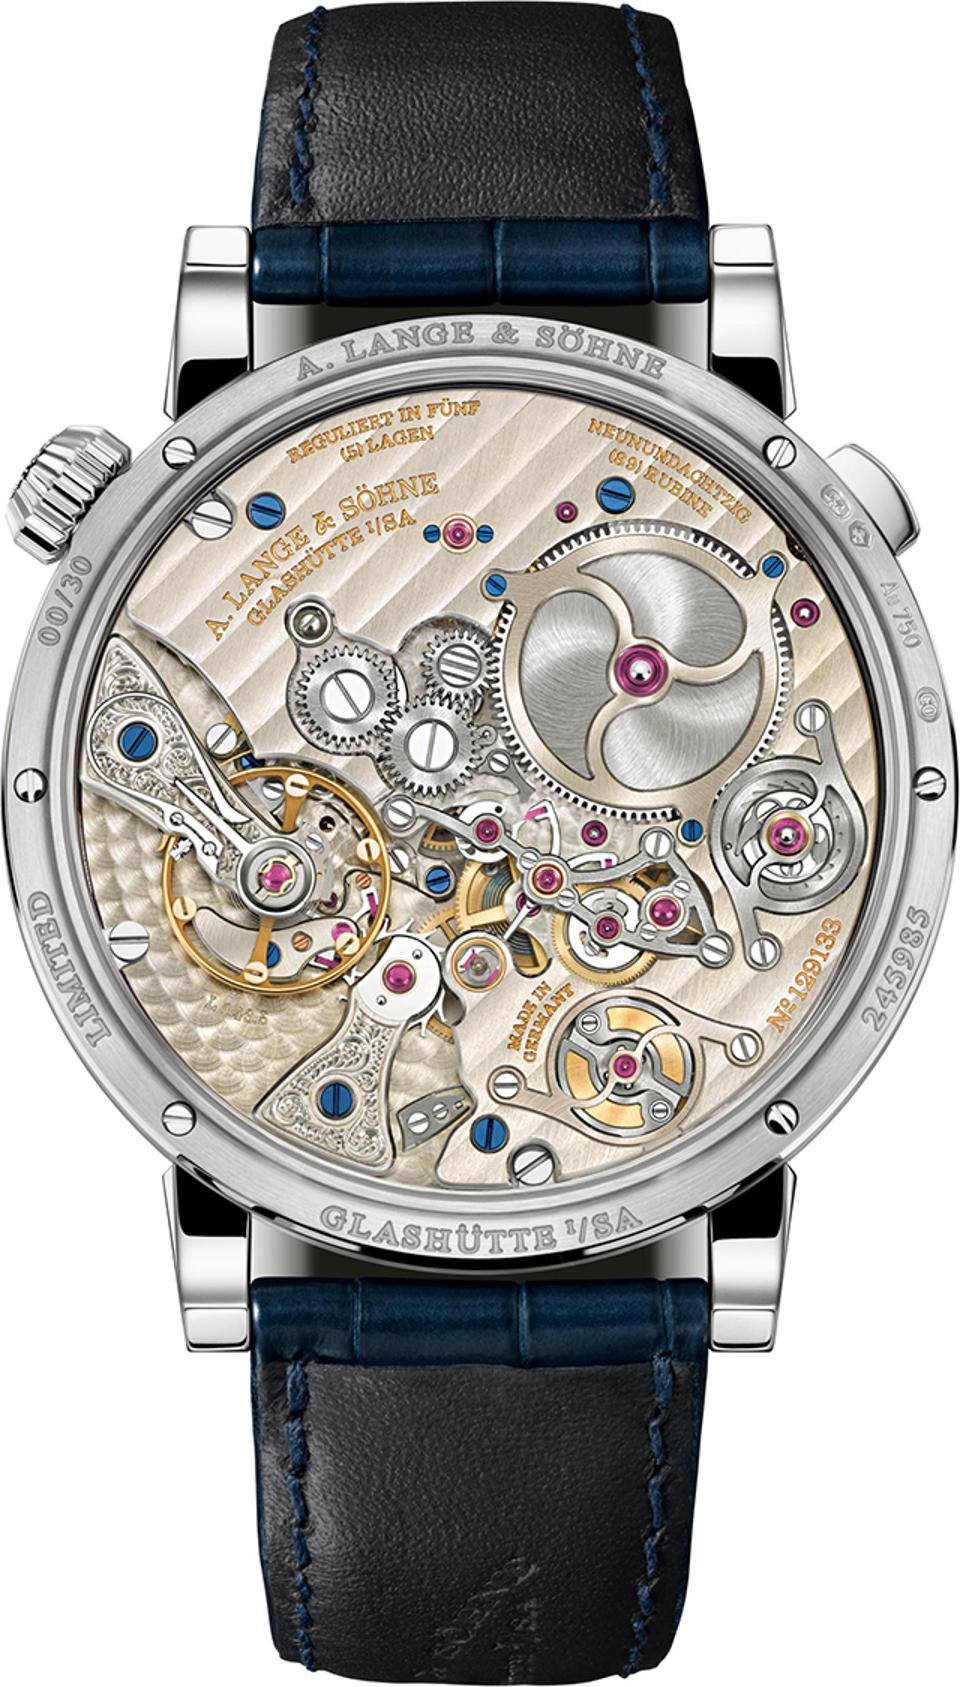 The open caseback of the A. Lange & Söhne Zeitwerk Minute Repeater displays the movement.